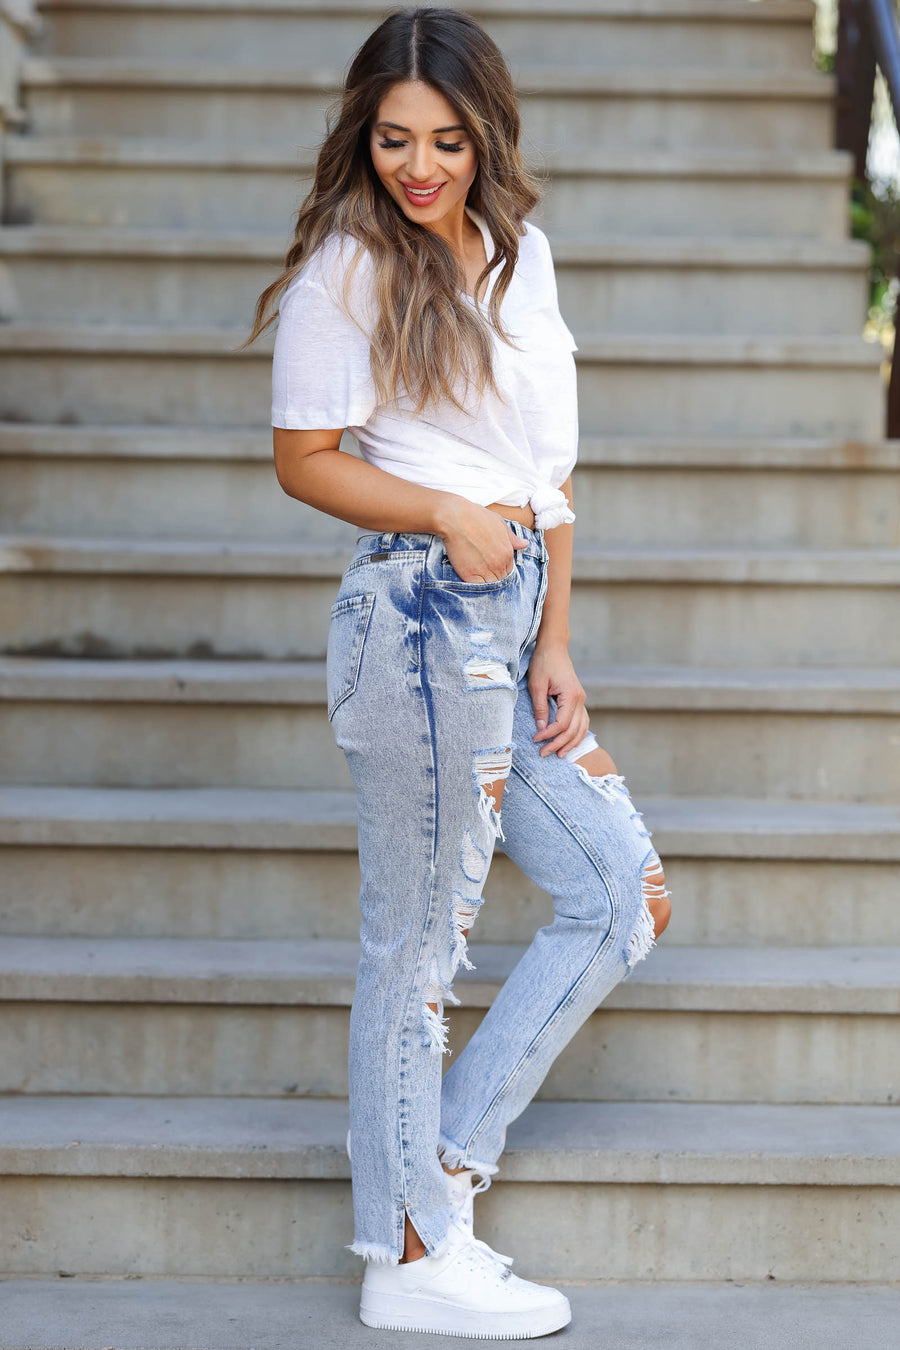 KAN CAN Layla Distressed Boyfriend Jeans - Light Acid Wash closet candy women's trendy ripped mom jeans sitting